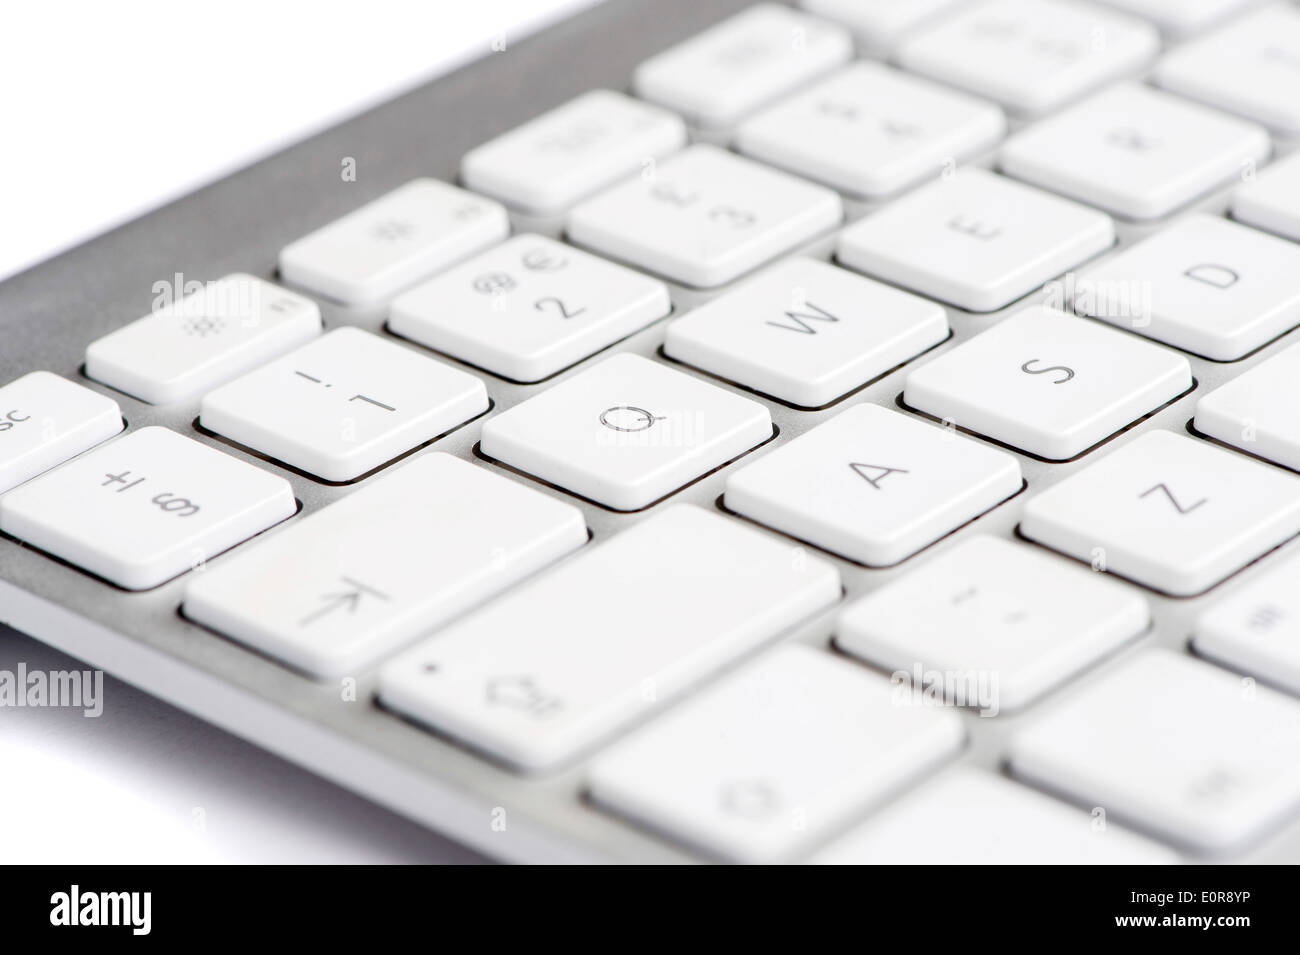 Apple mac white Keyboard focused on the letter Q - Stock Image